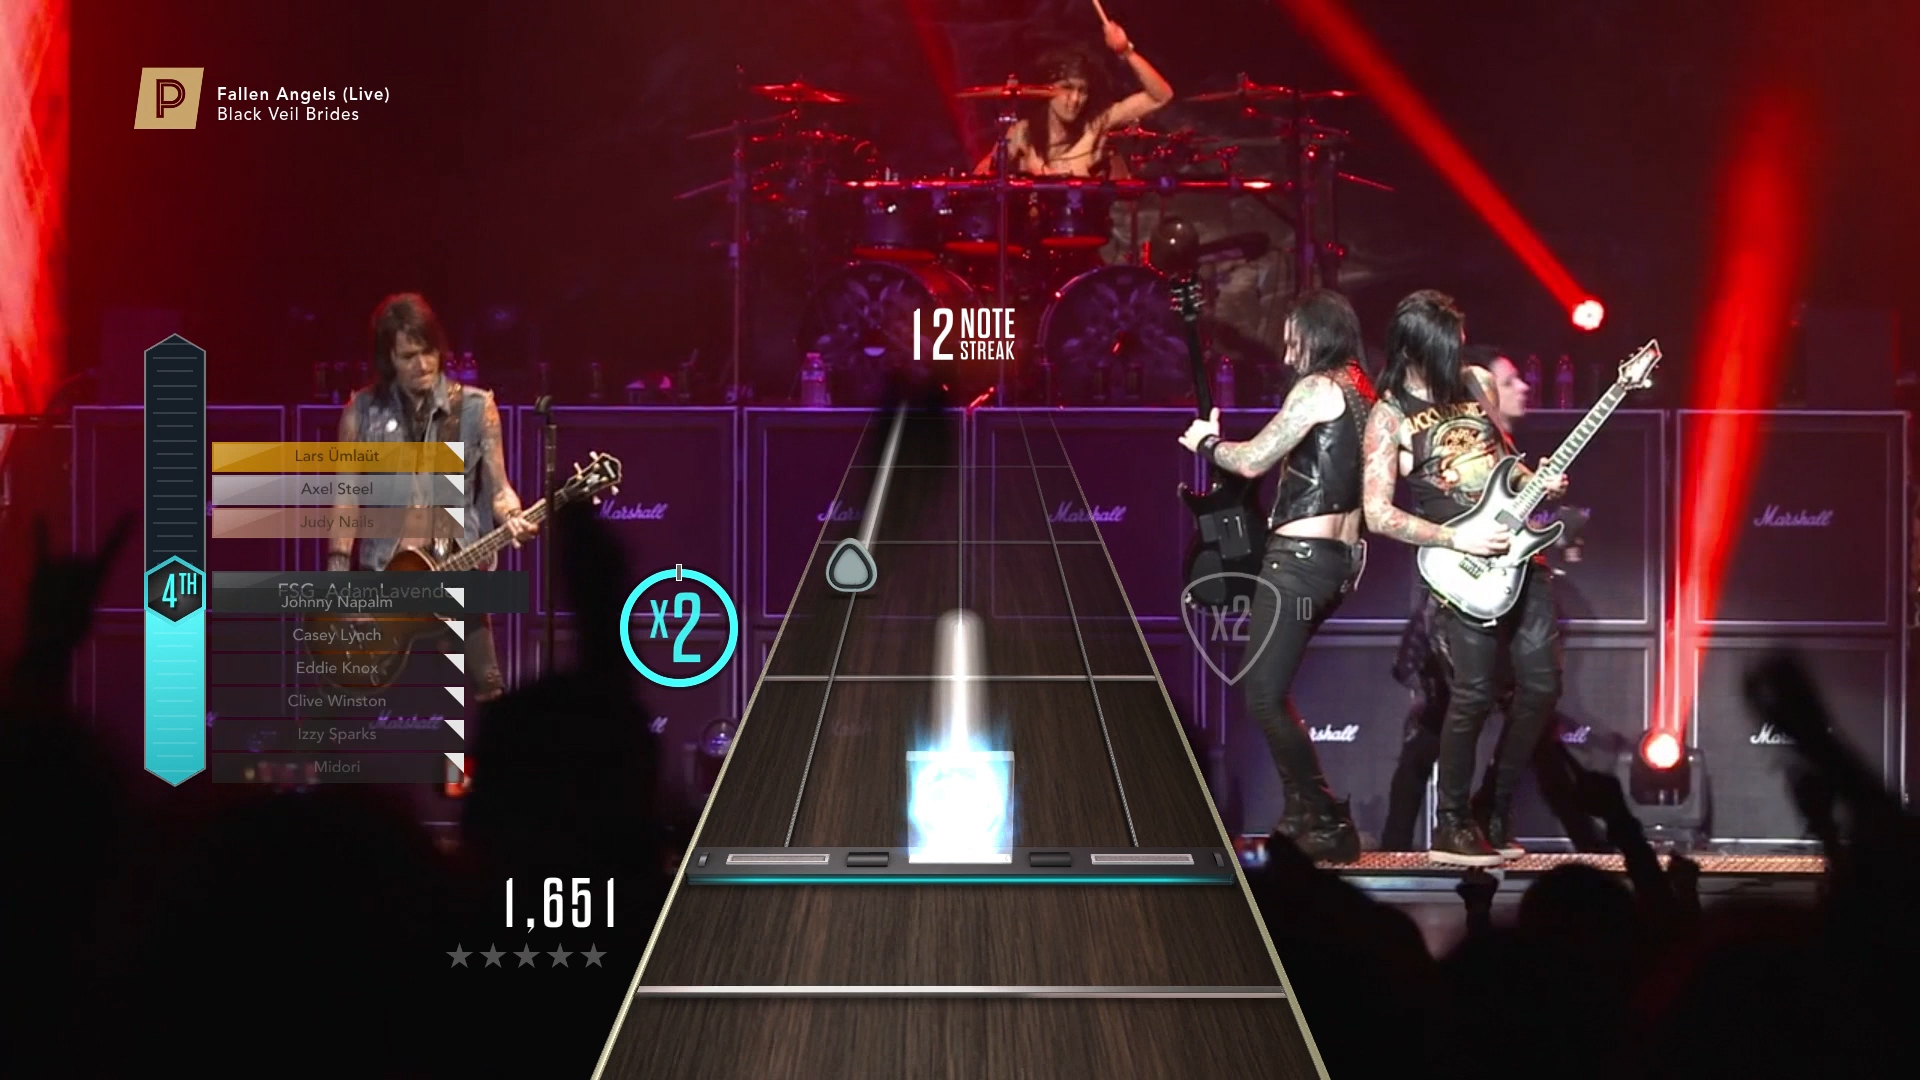 Weekend Wallpaper Hd Guitar Hero Live Players Get Free Access To The Entire